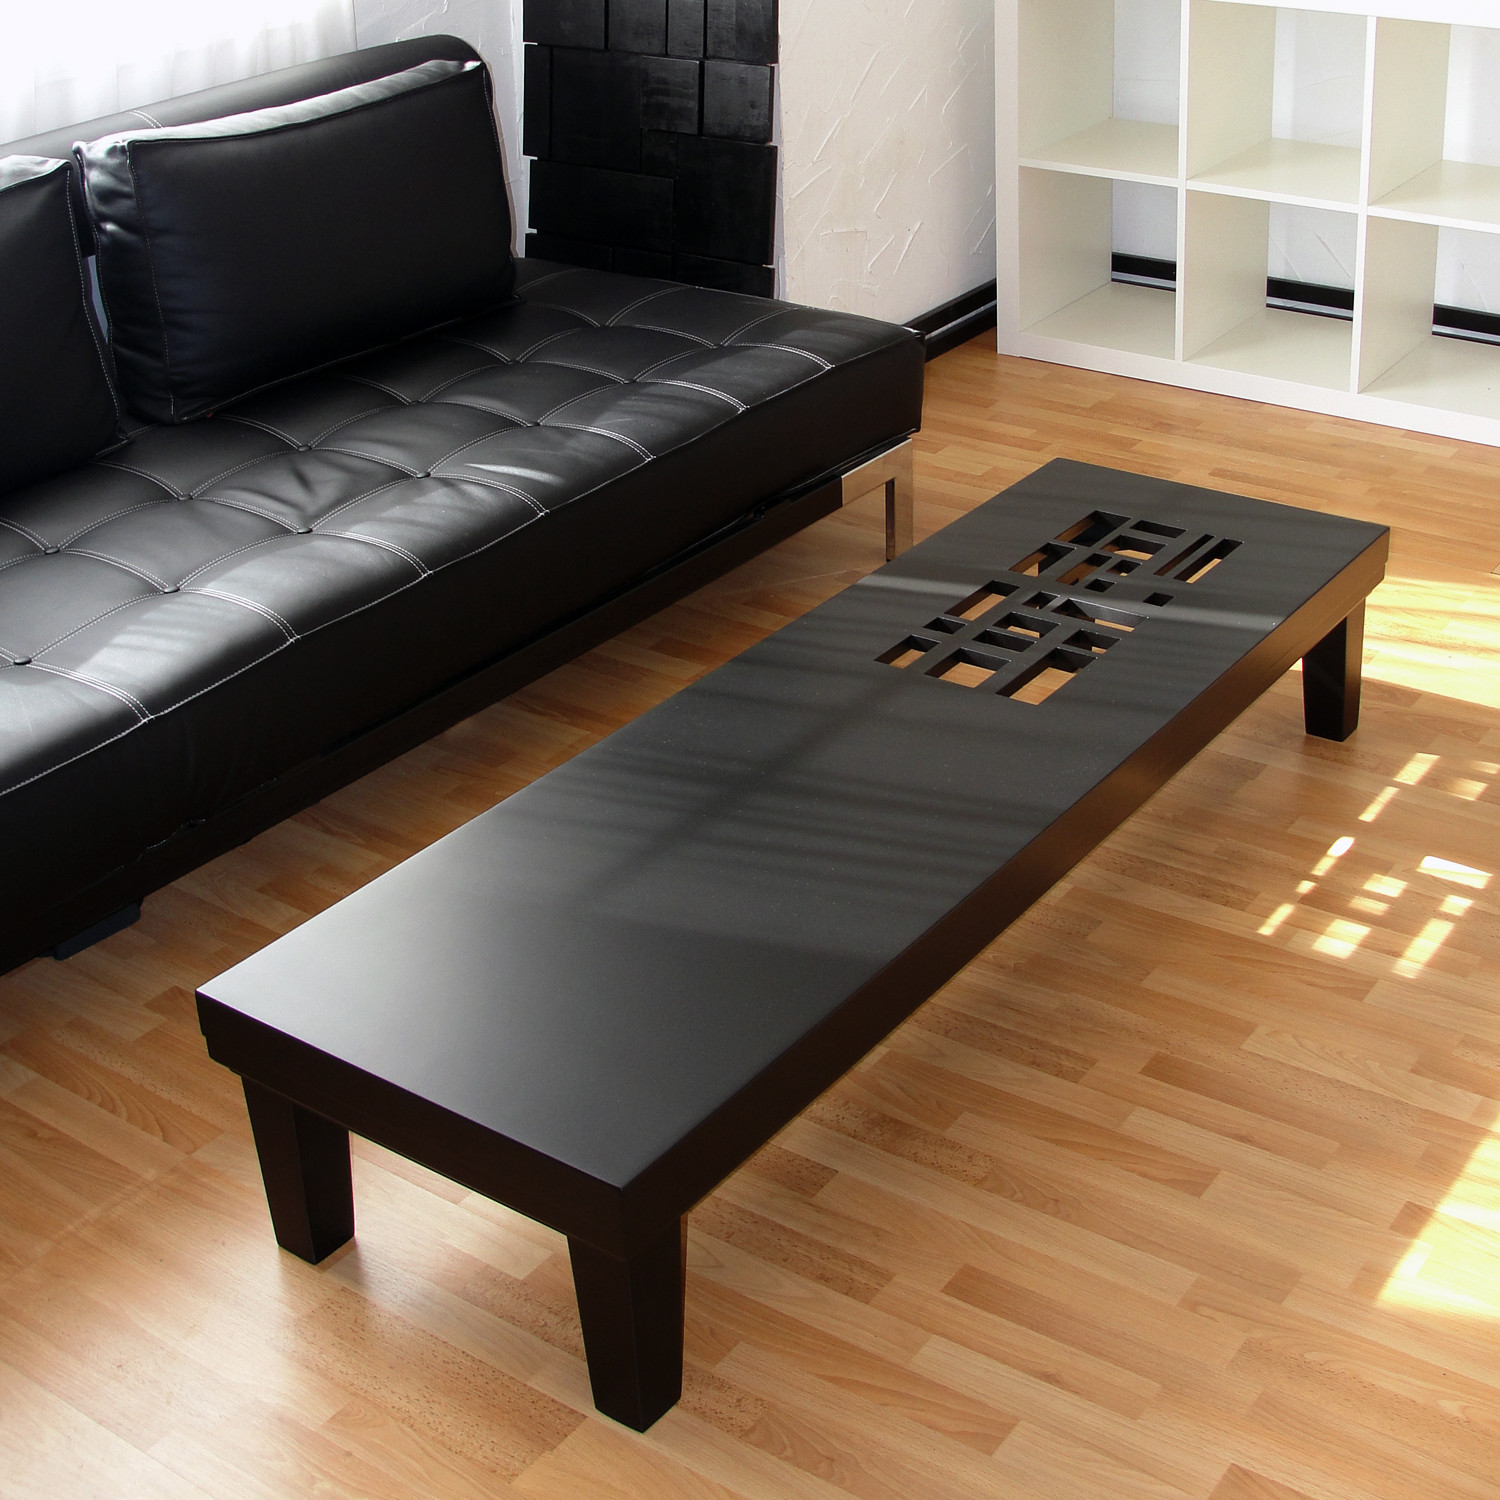 Classic Black Coffee Table by Farzan Nemat